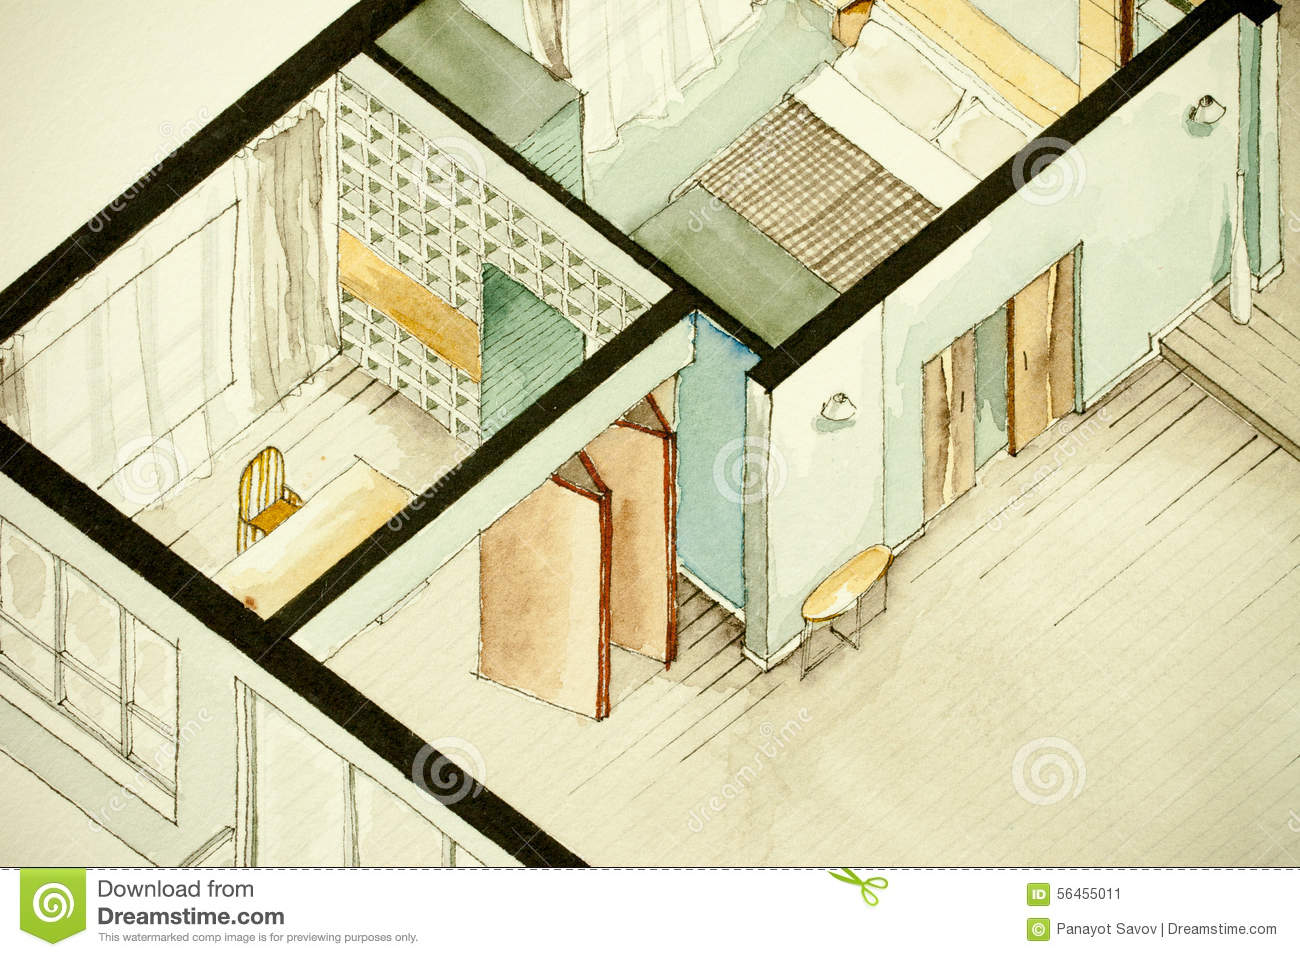 Isometric Partial Architectural Watercolor Drawing Of